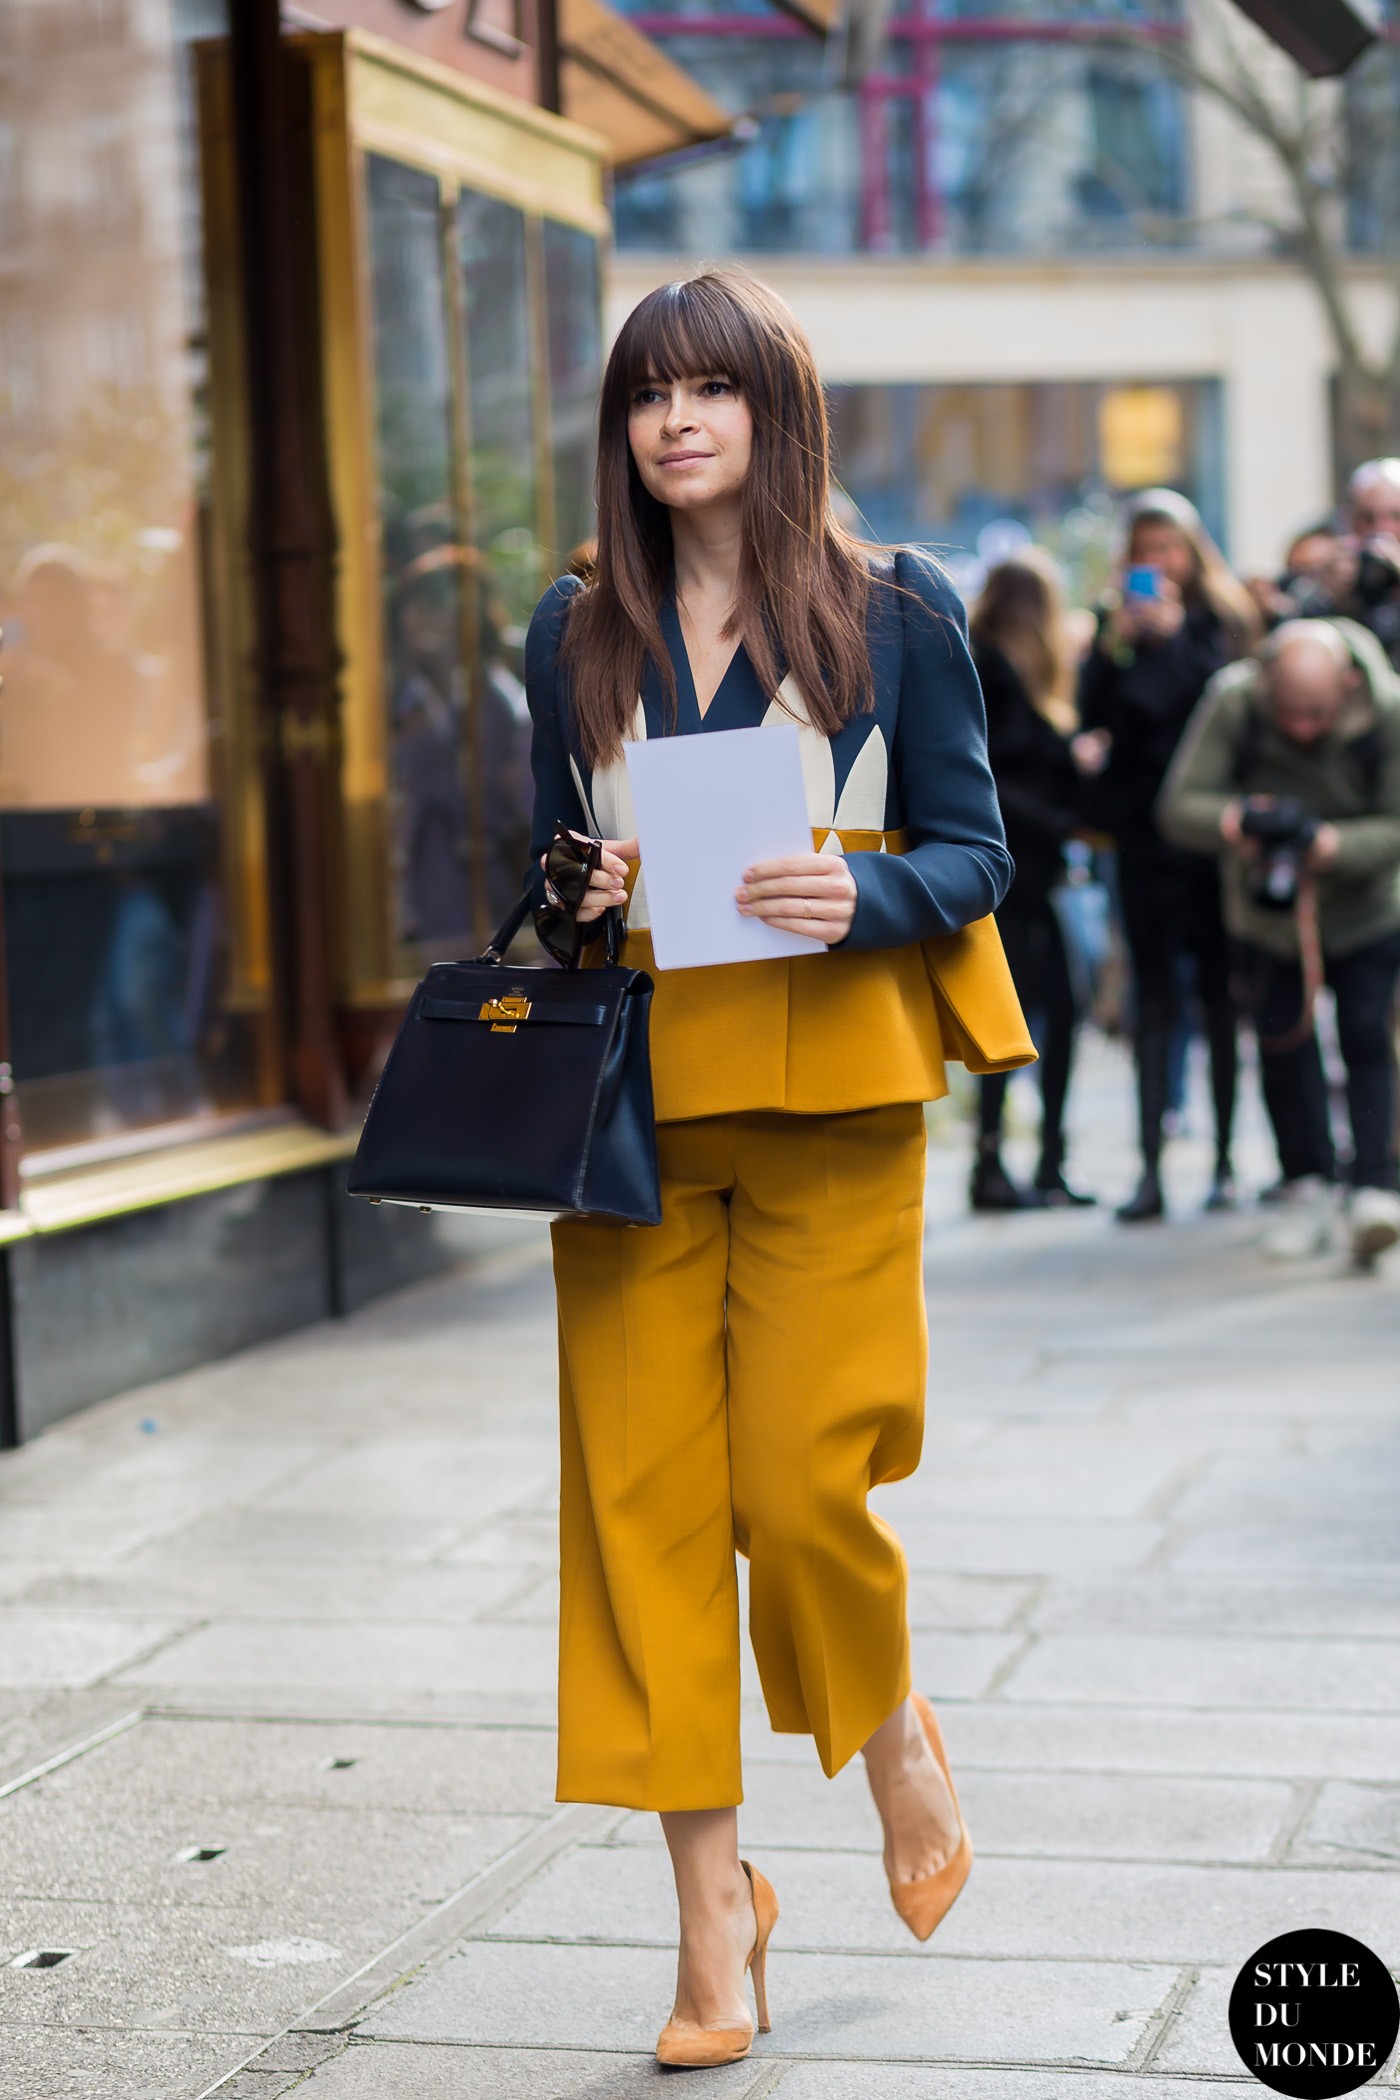 Miroslava-Duma-Mira-Duma-by-STYLEDUMONDE-Street-Style-Fashion-Photography_MG_5706